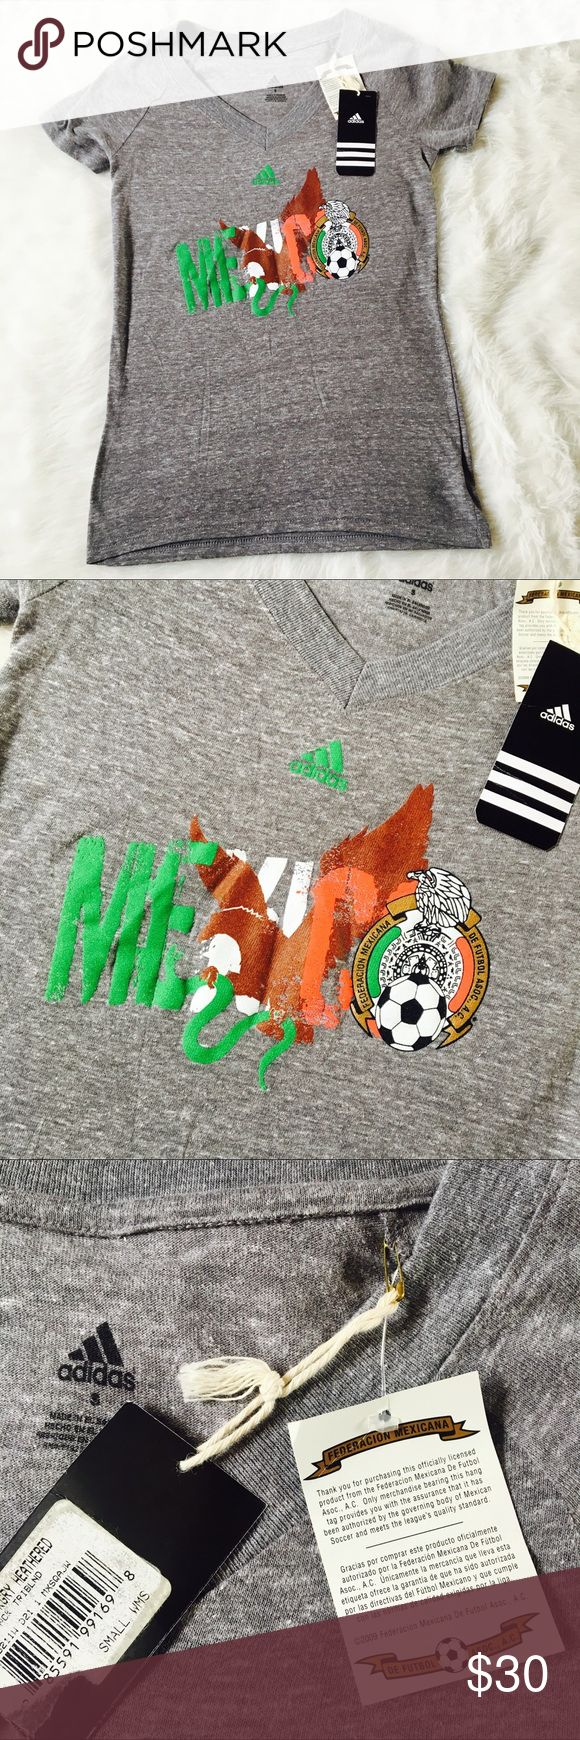 Adidas Mexico Soccer Team Selección Nacional Fits up to a small size 4. Limited edition! Mexico Gold Cup Style! adidas Tops Tees - Short Sleeve